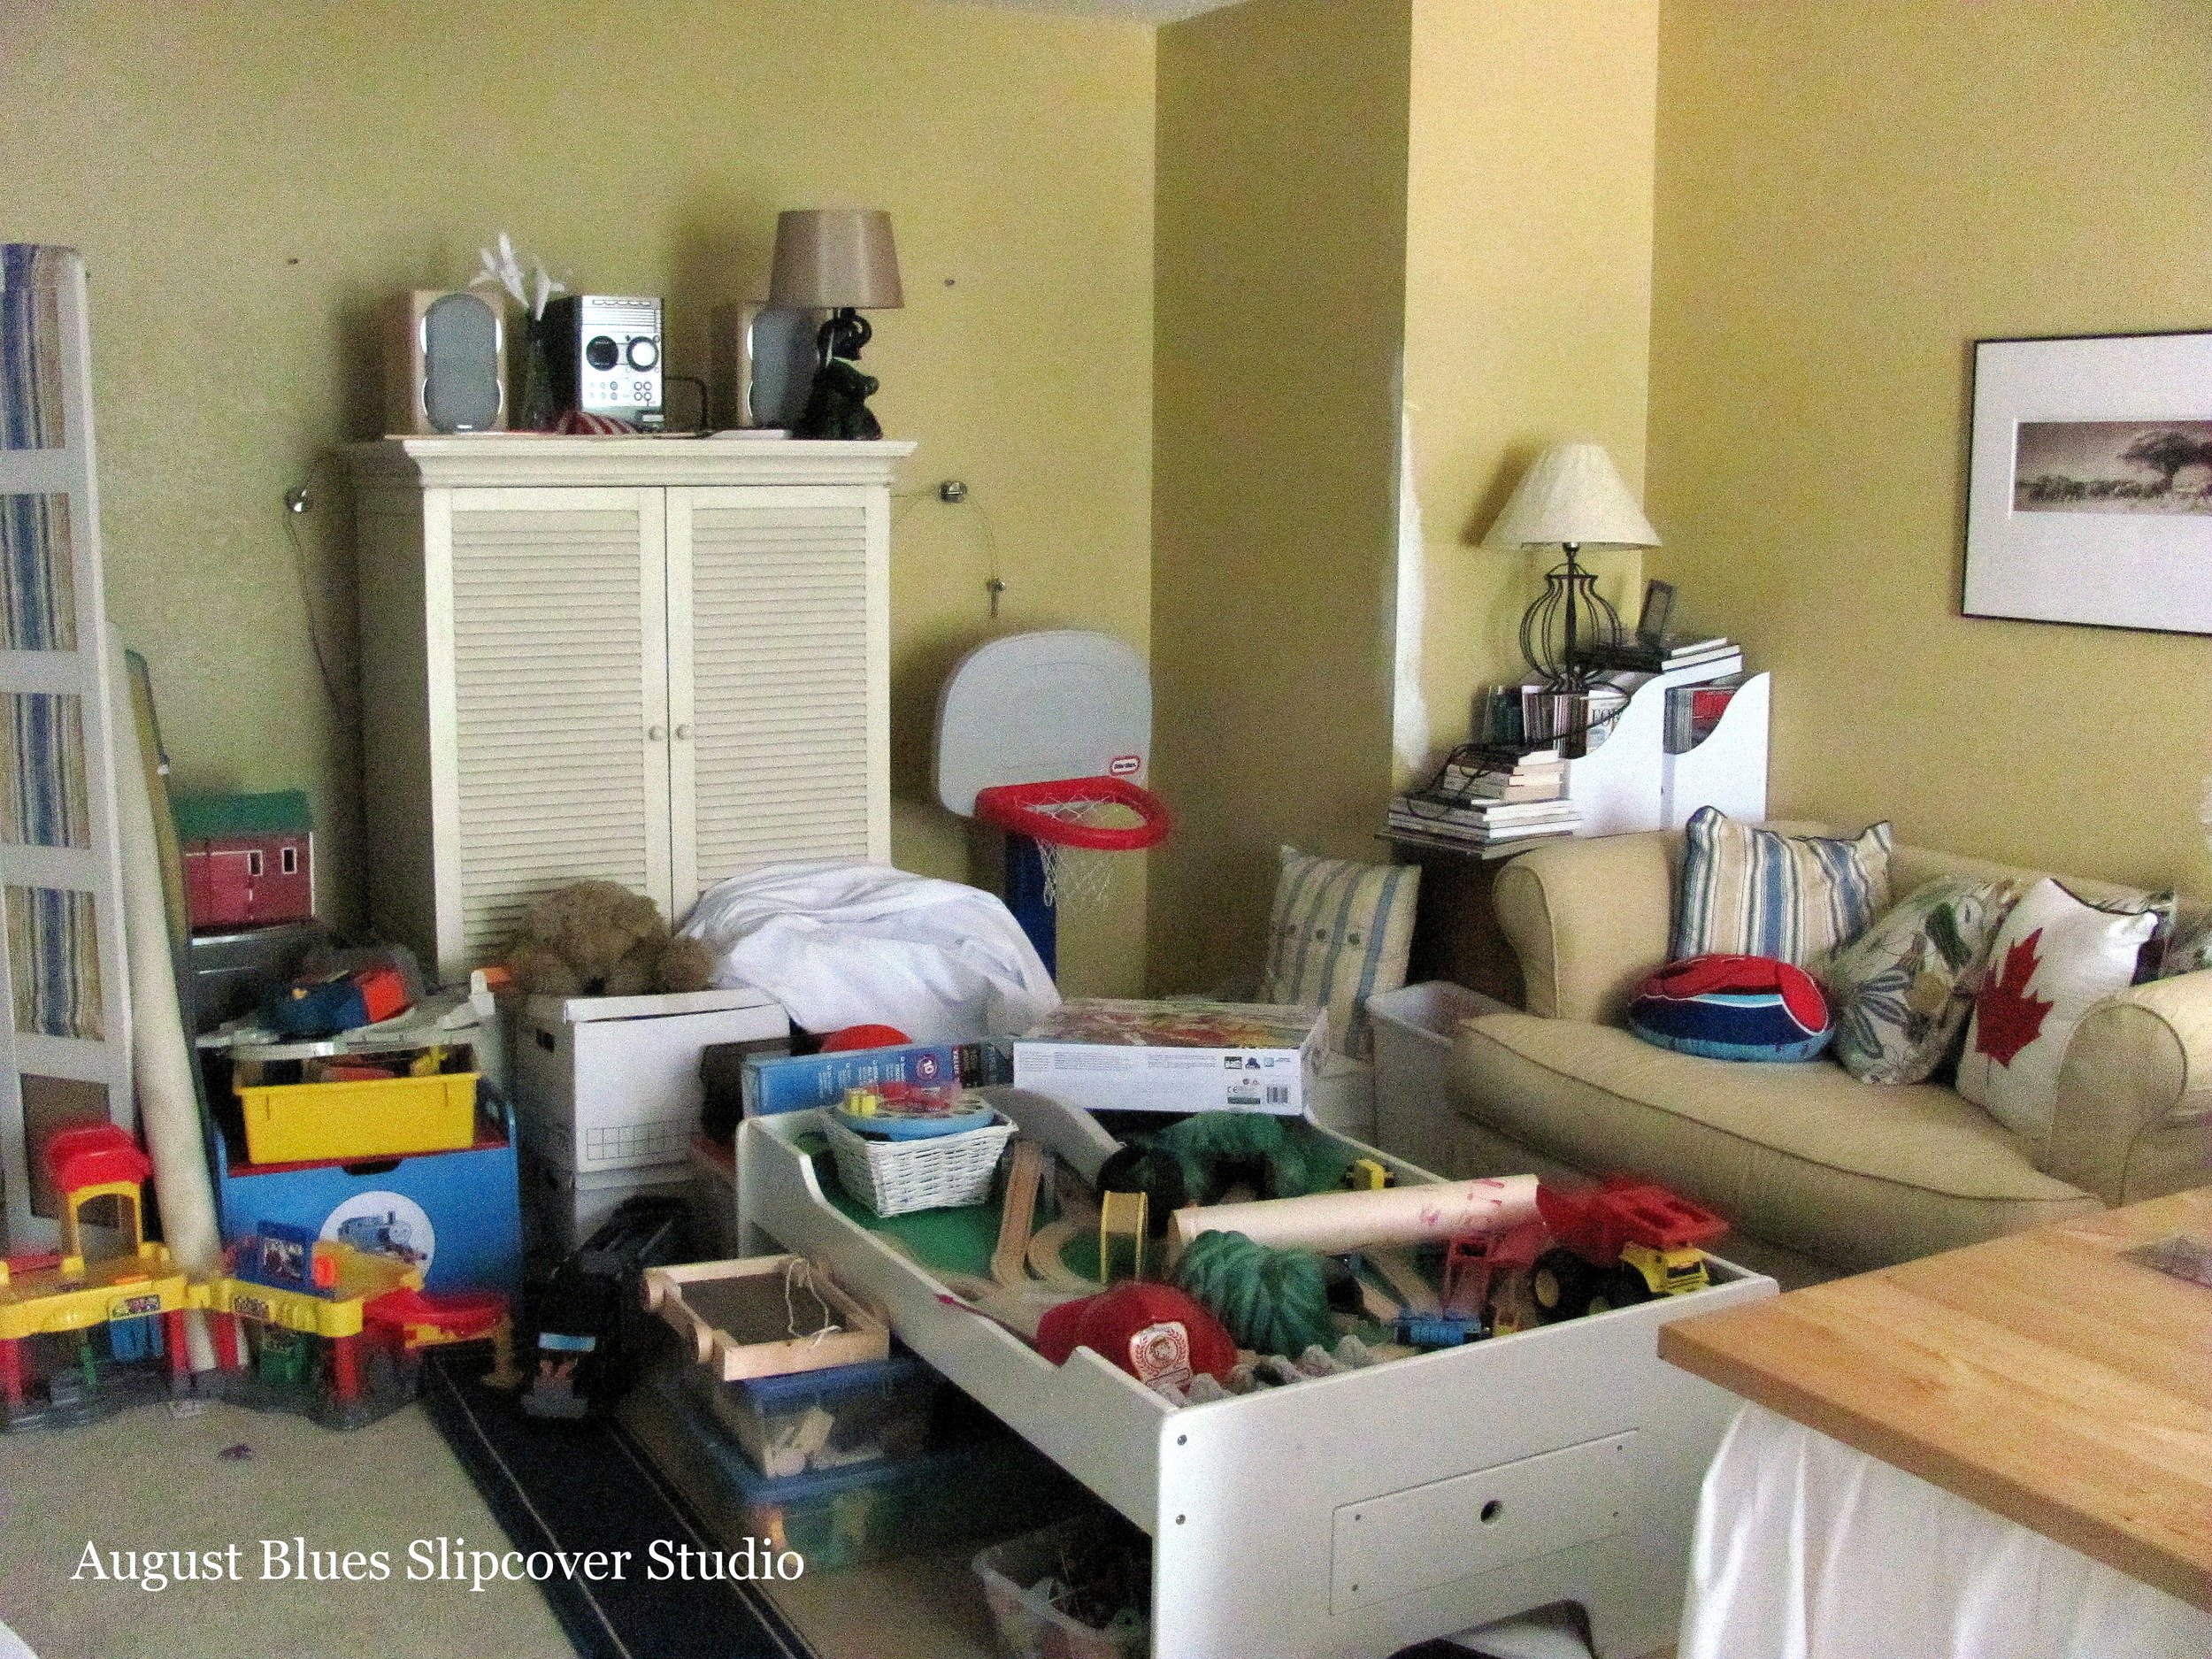 August Blues - Playroom Disorganization